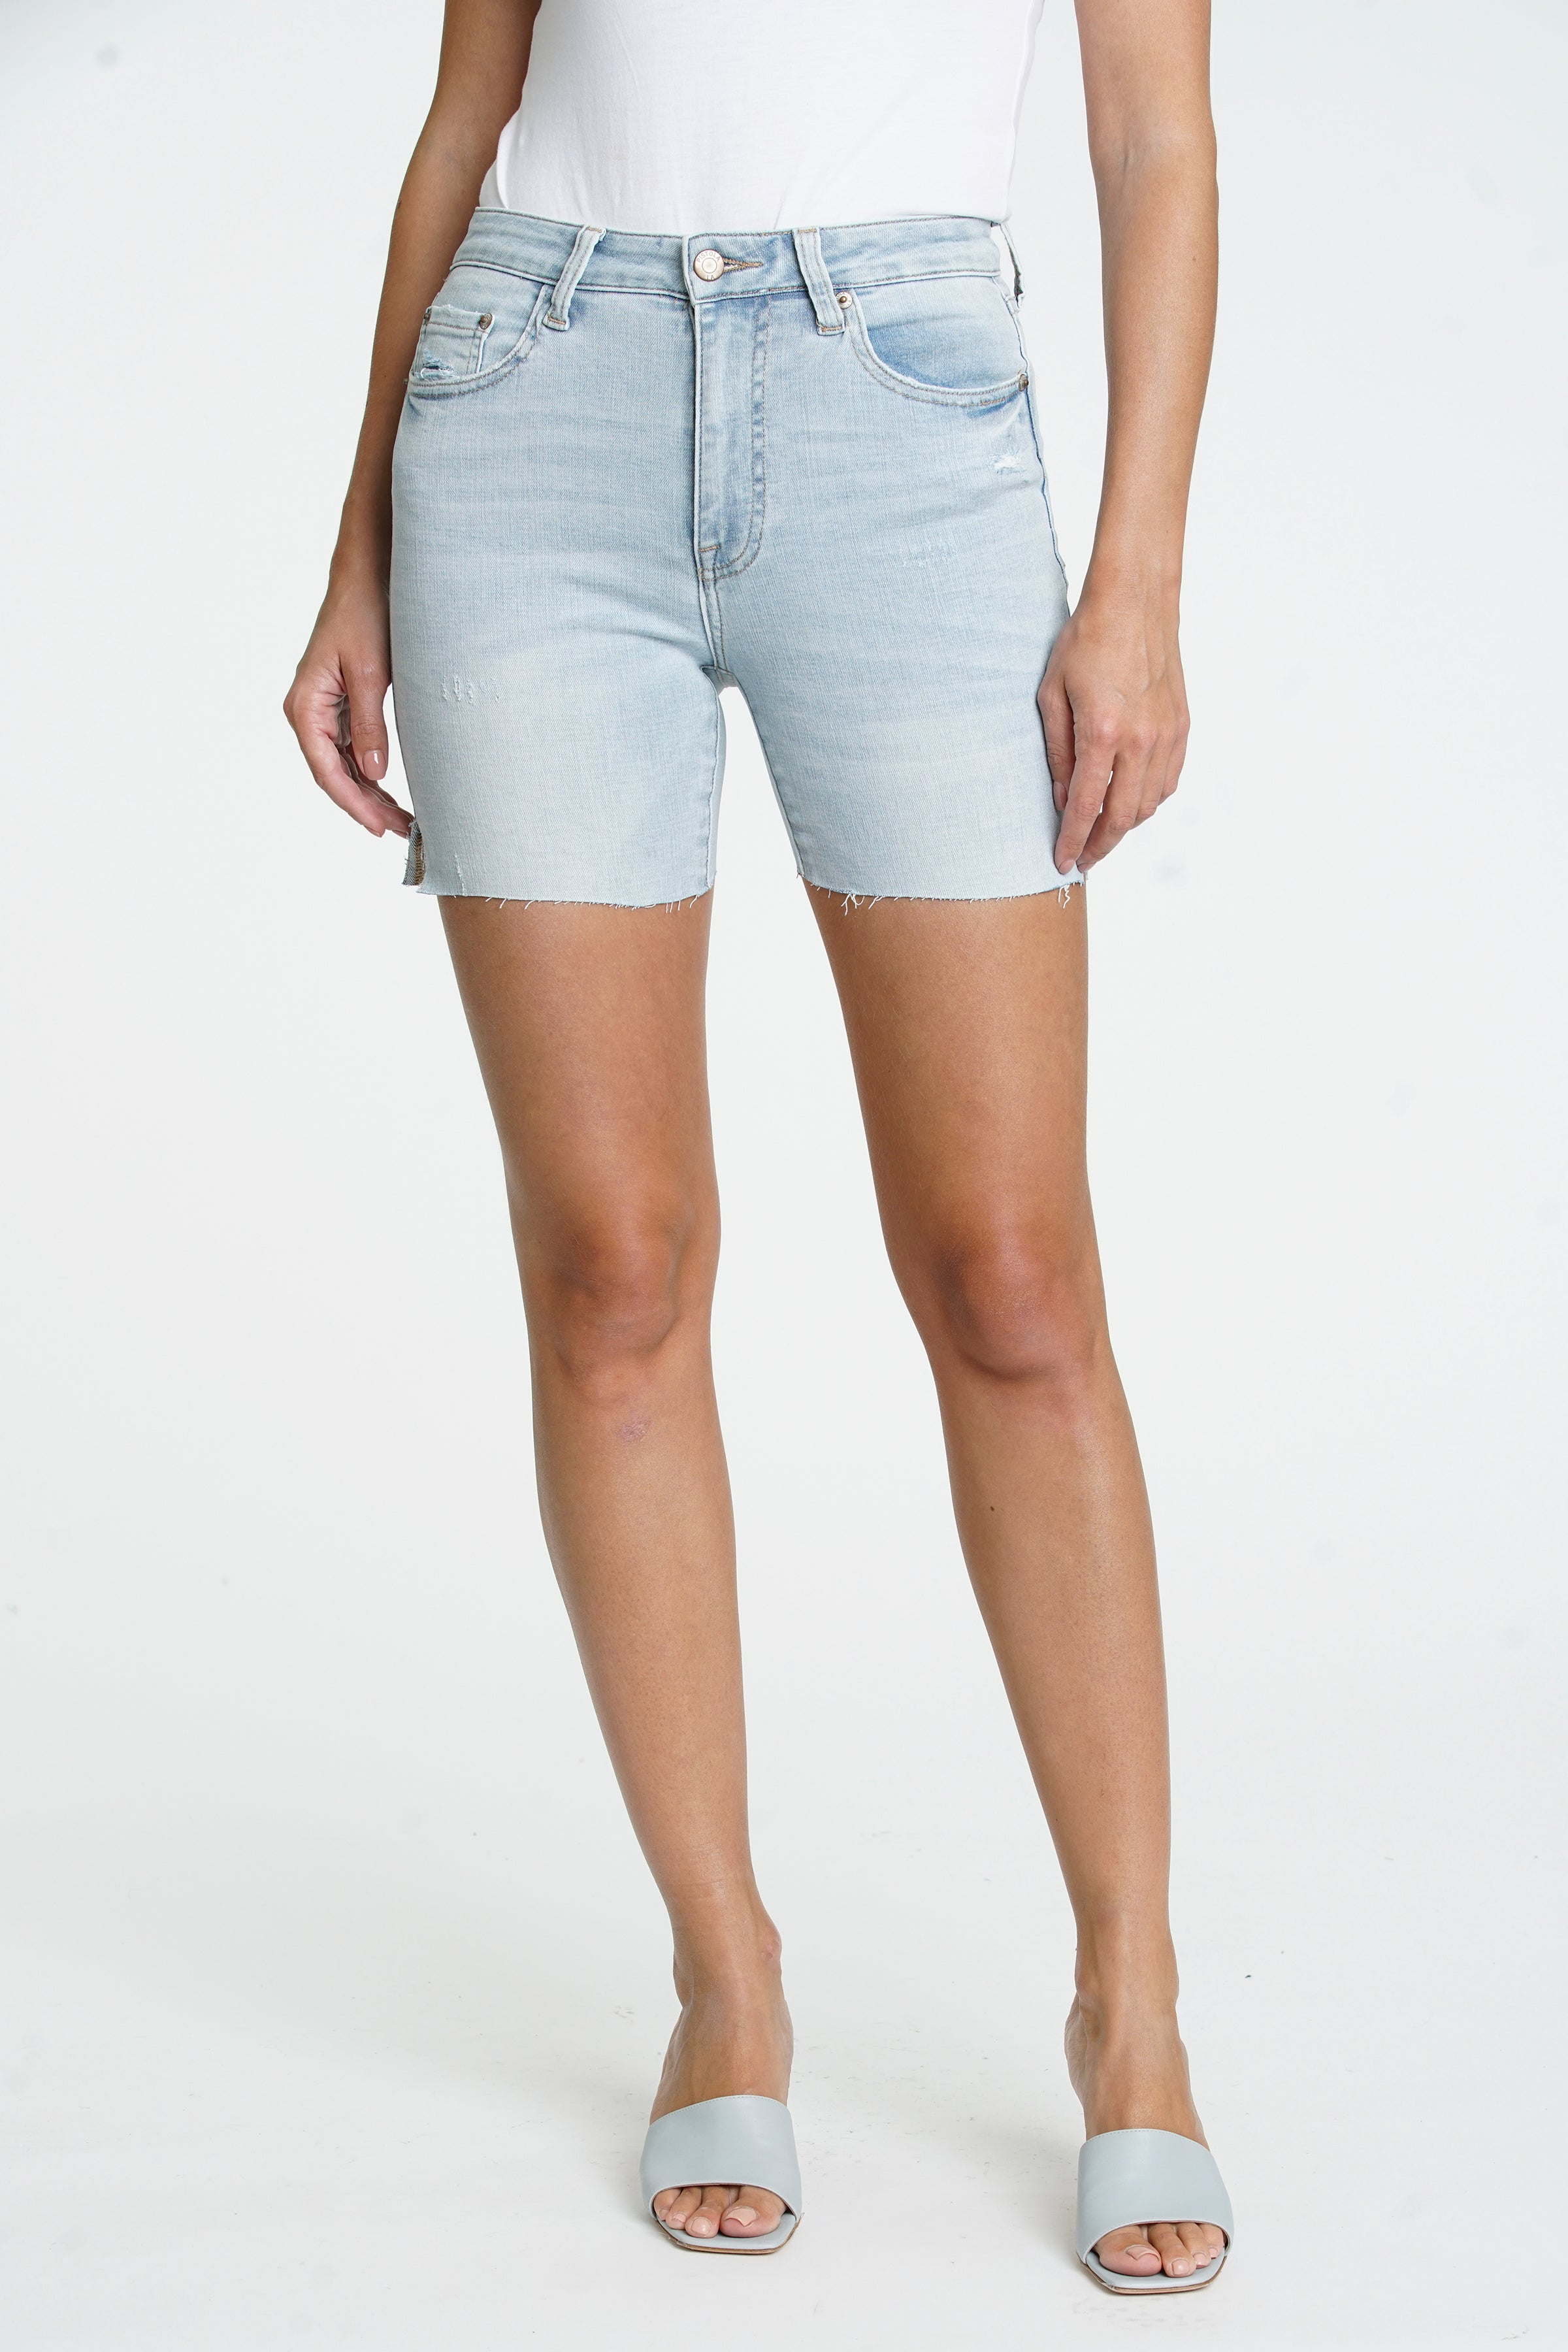 Aline High Rise Midi Short - Seeker